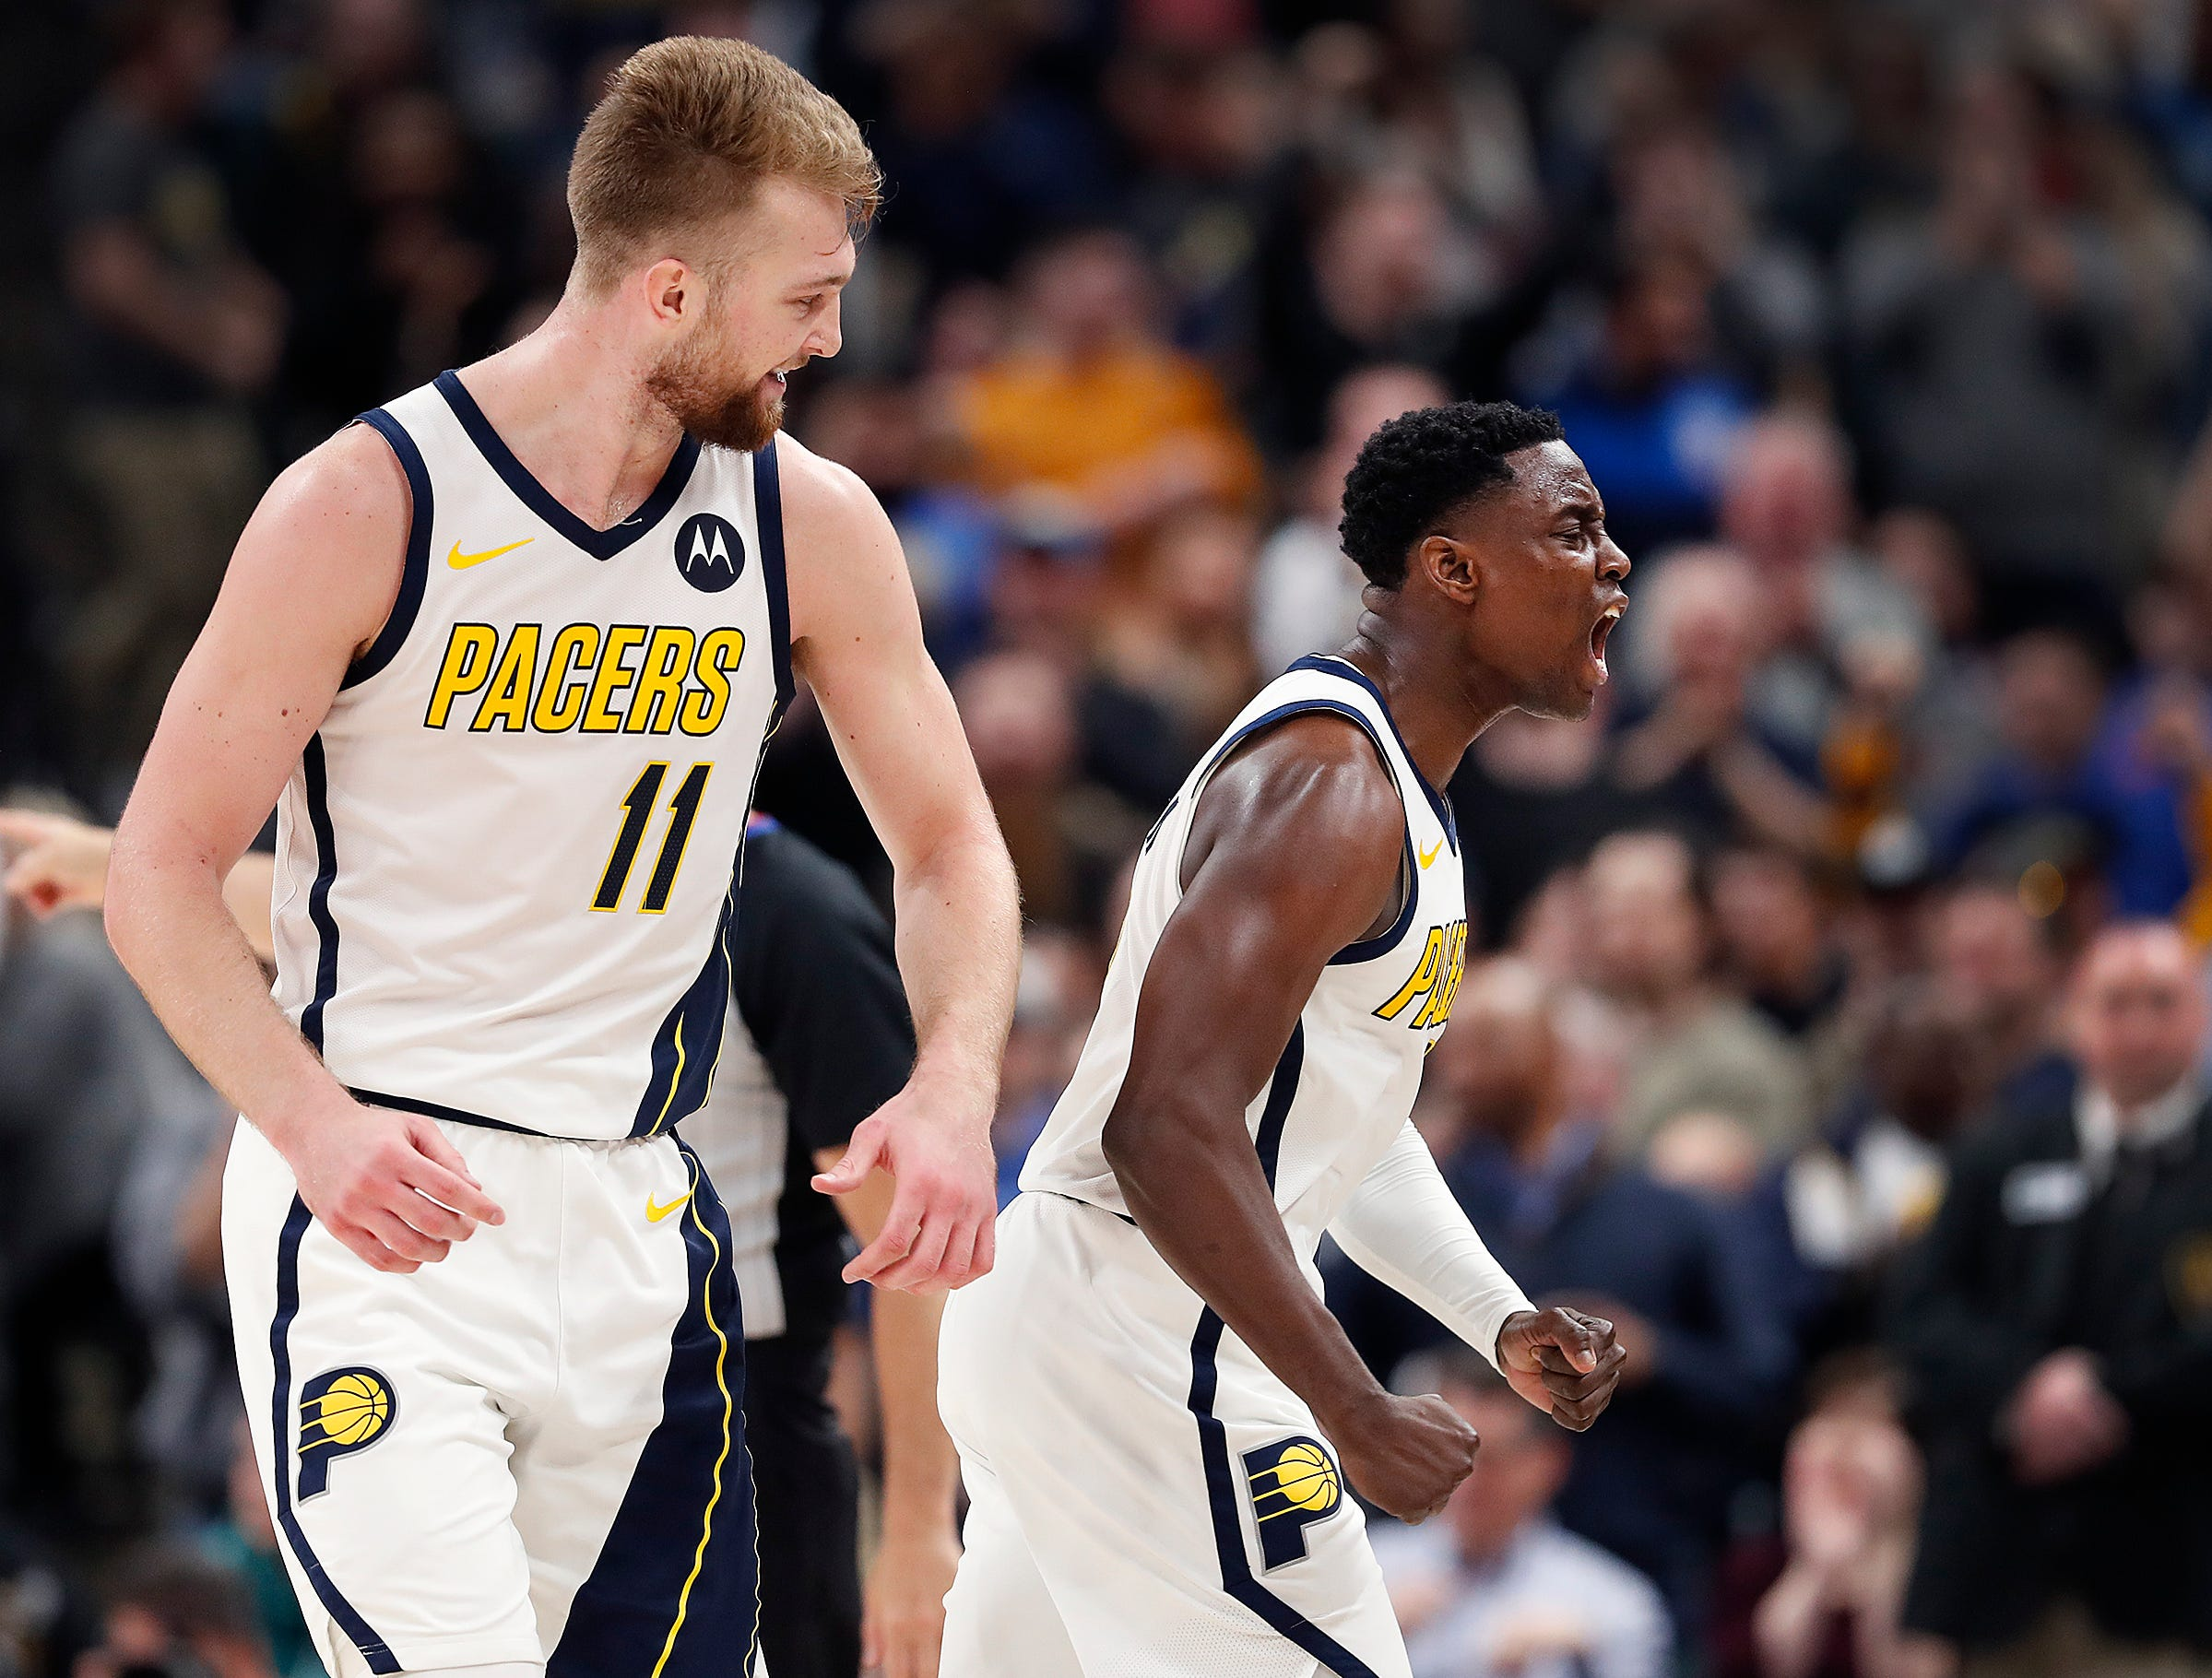 Indiana Pacers guard Darren Collison (2) celebrates with Domantas Sabonis (11) in the second half of their game at Bankers Life Fieldhouse on Thursday, Mar. 14, 2019. The Pacers defeated the Thunder 108-106.